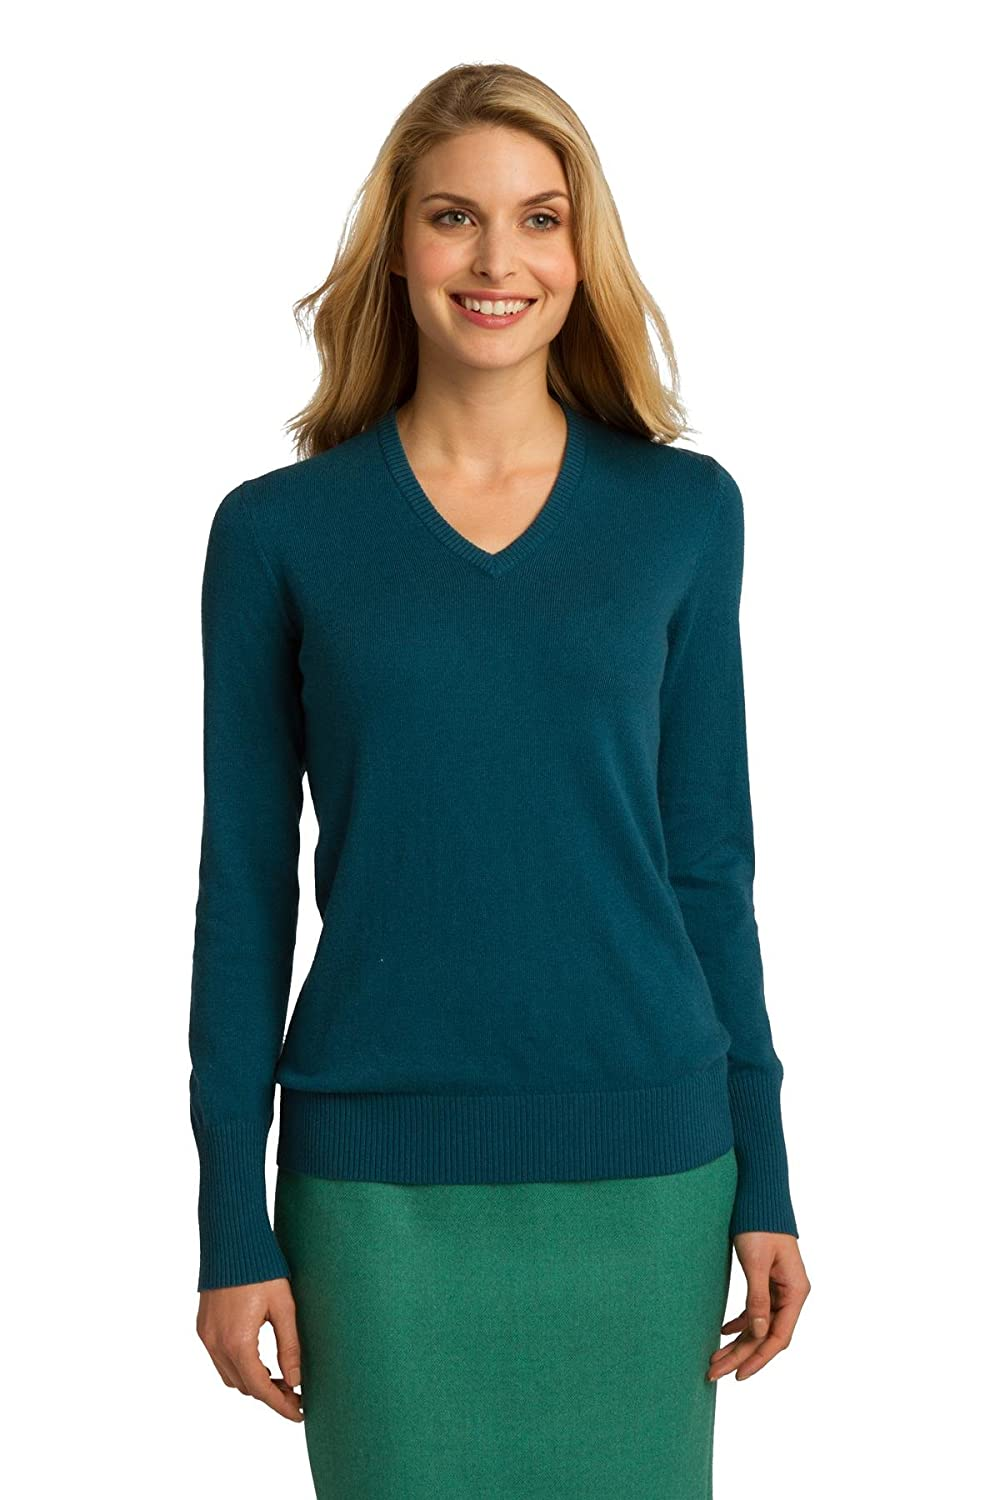 Amazon.com: Port Authority Women's VNeck Sweater: Clothing